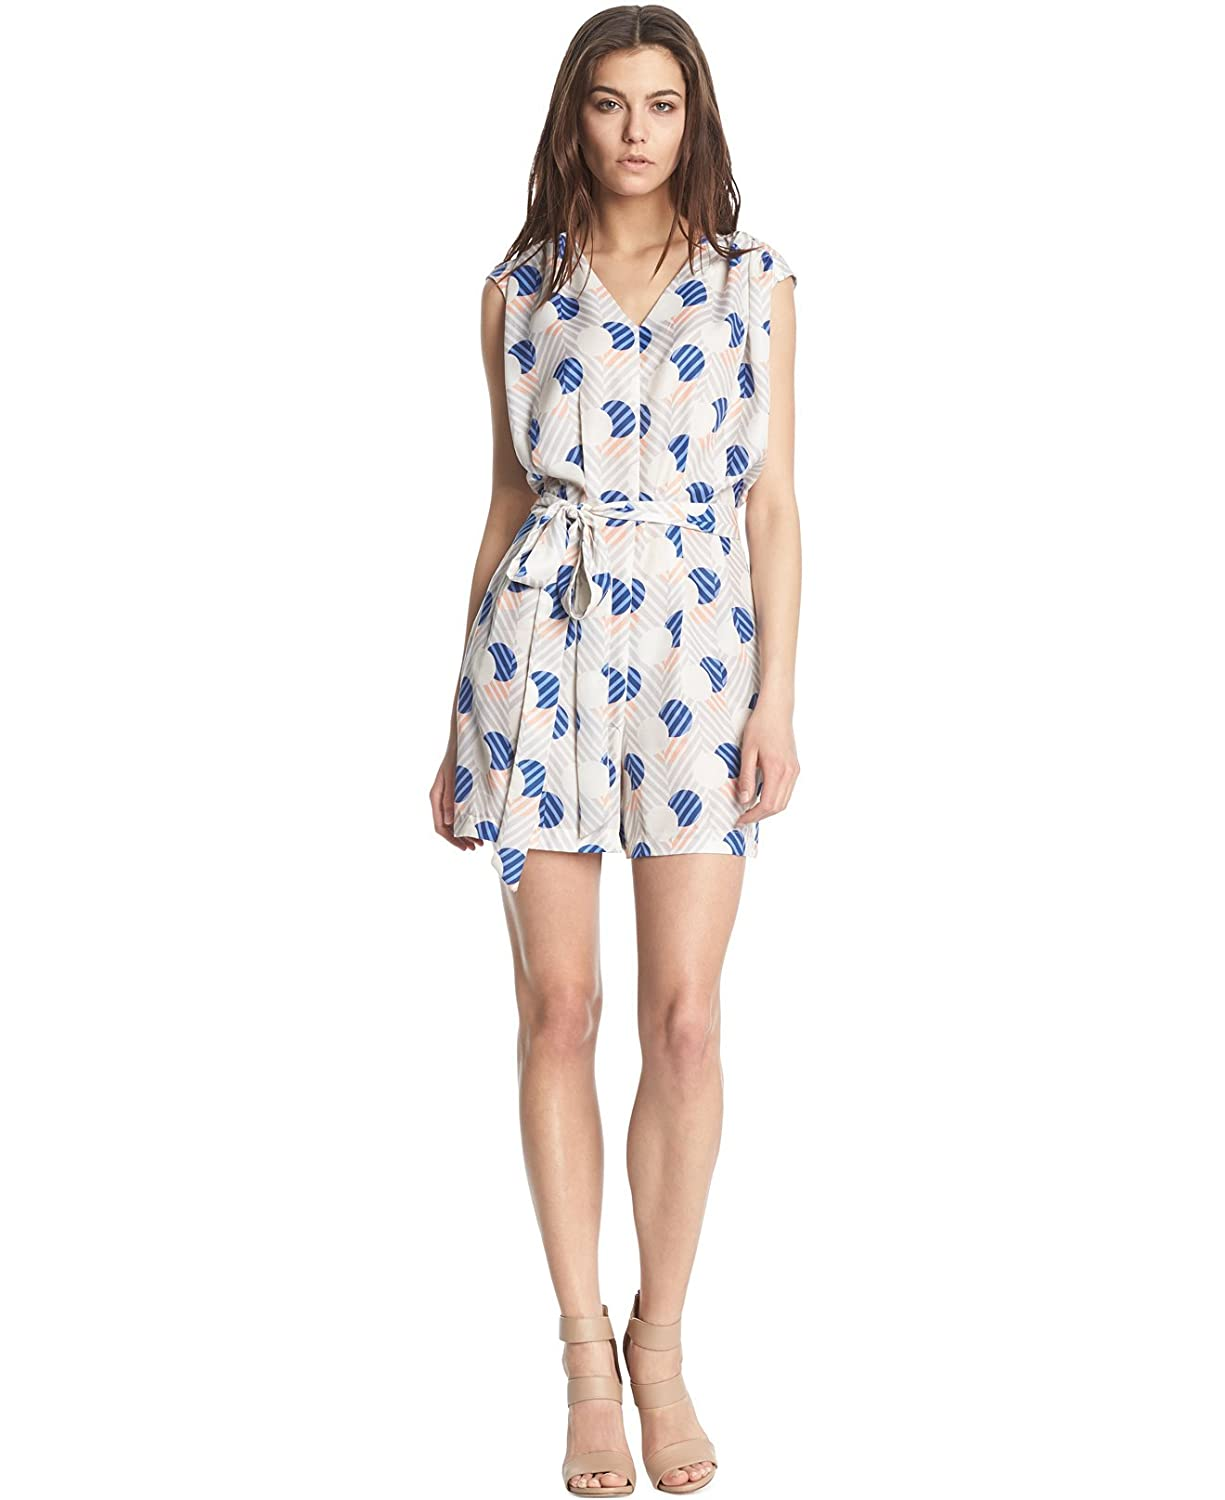 Kiind Of Women's Ruched Printed Camryn Romper